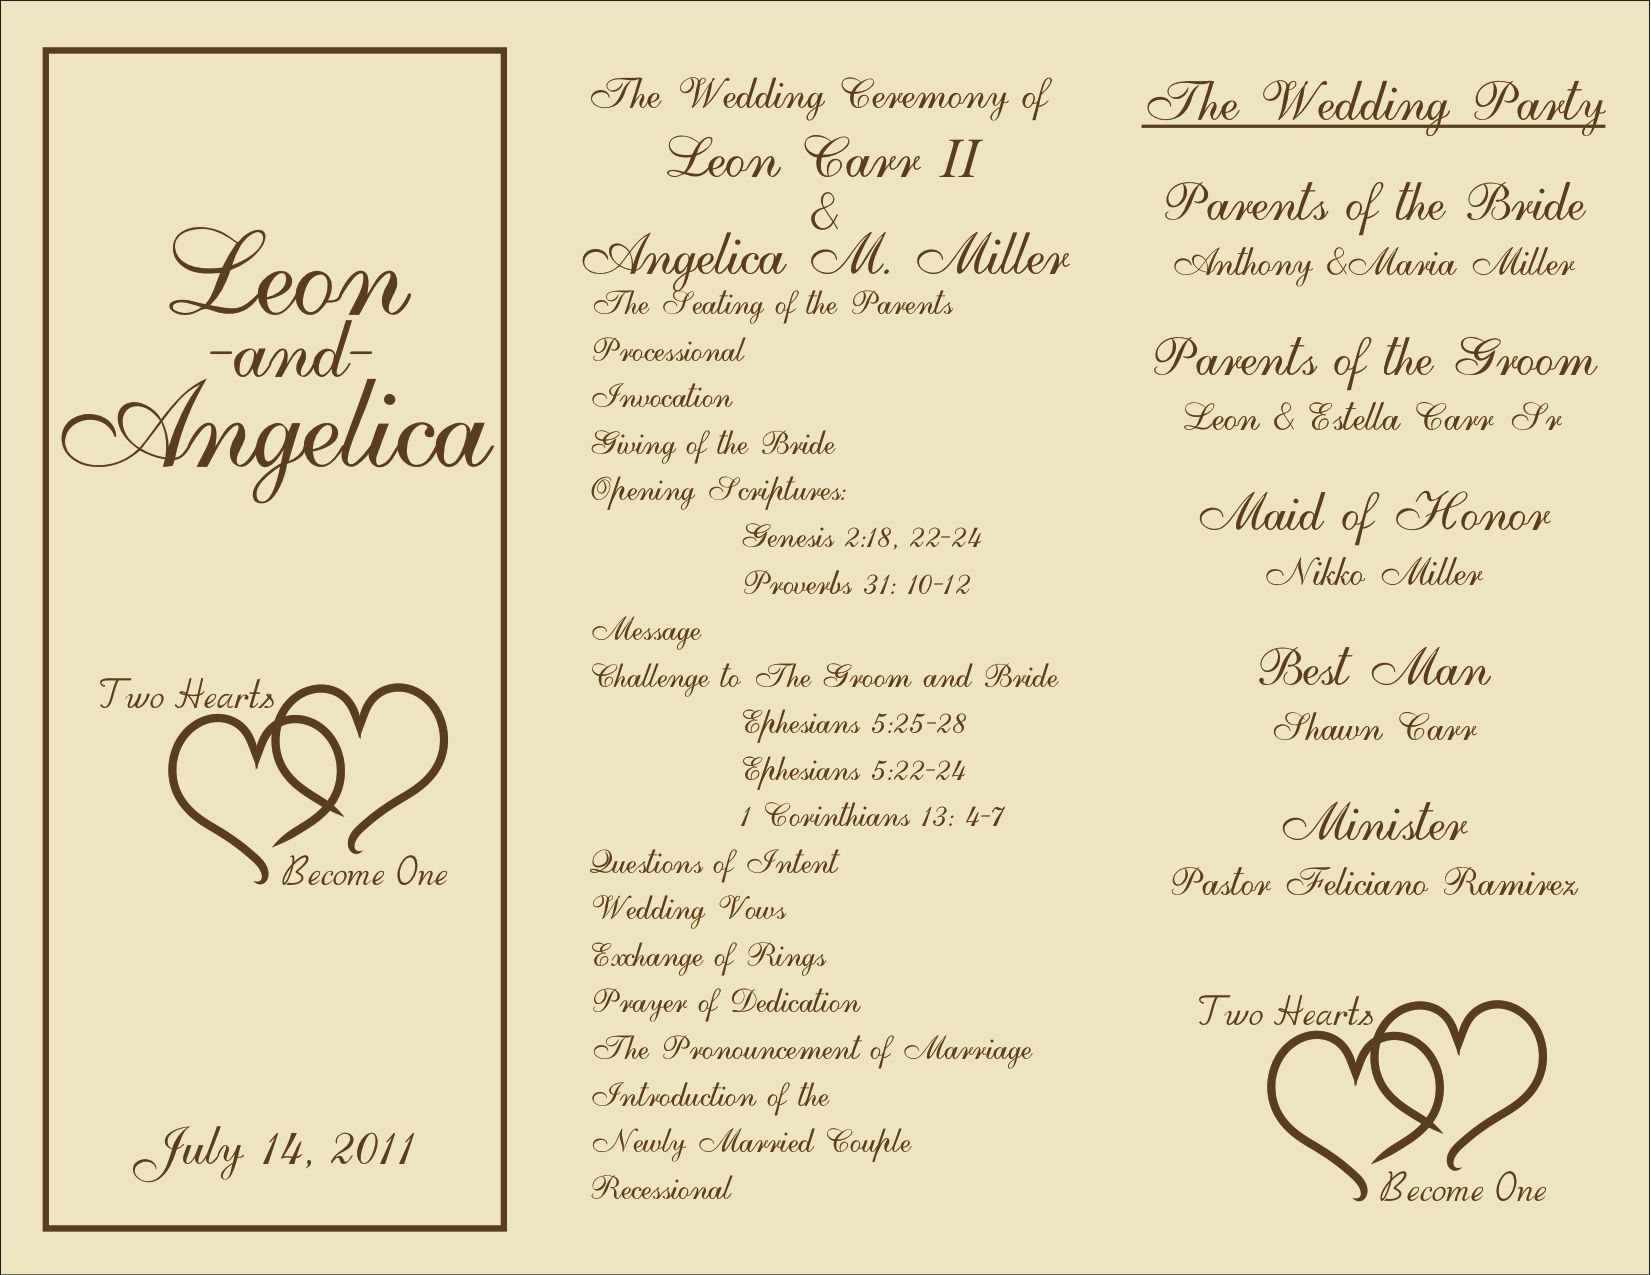 008 Wondrou Free Downloadable Wedding Program Template High Resolution  Templates That Can Be Printed Printable Fall ReceptionFull